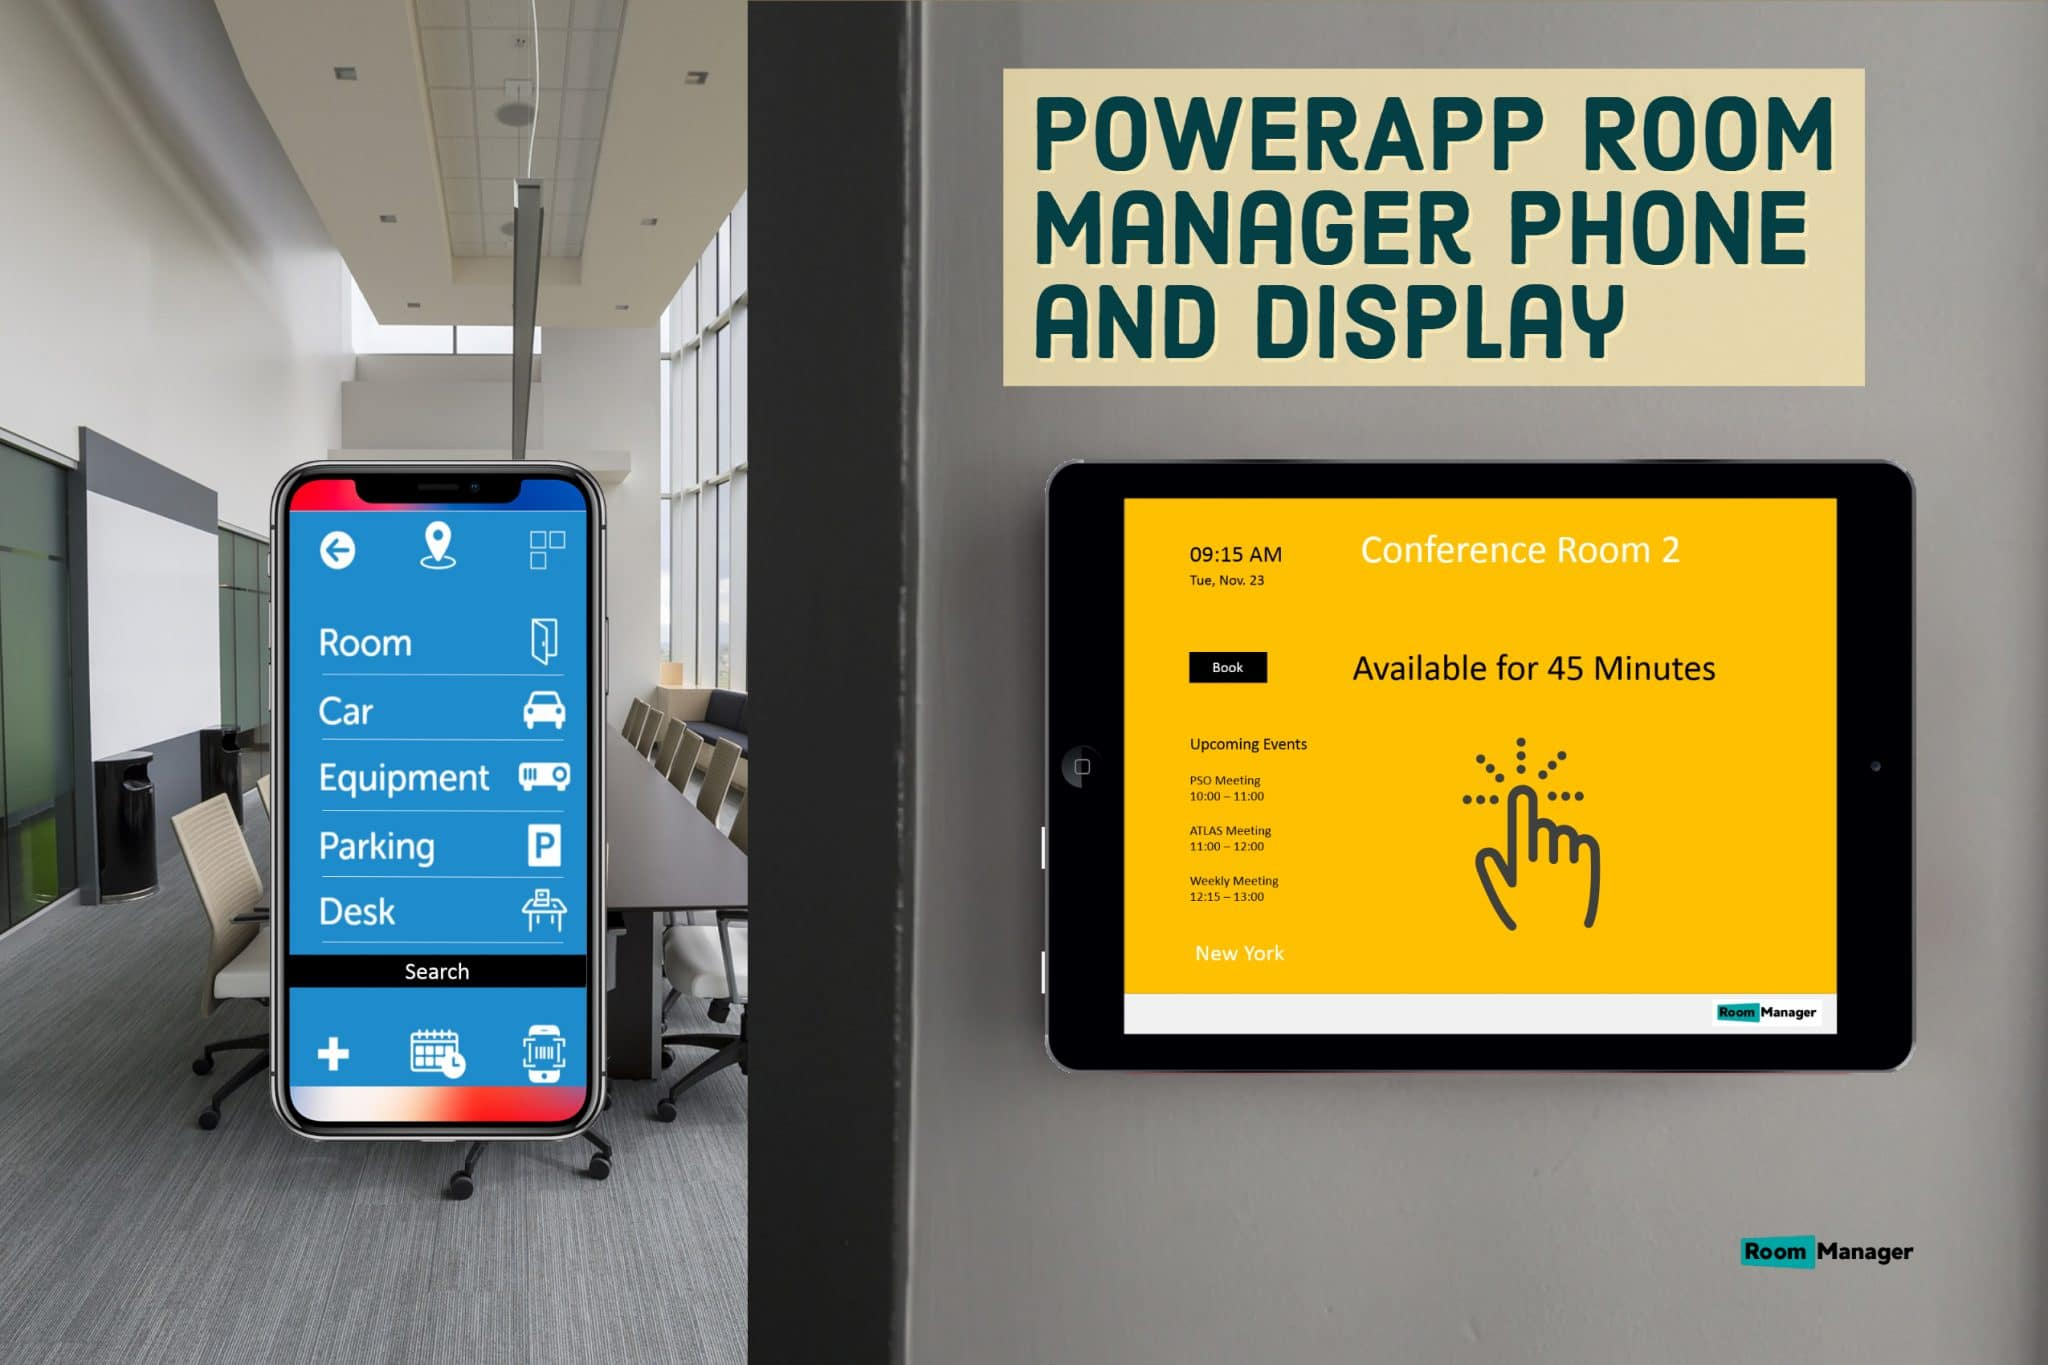 Powerapp Phone and Display